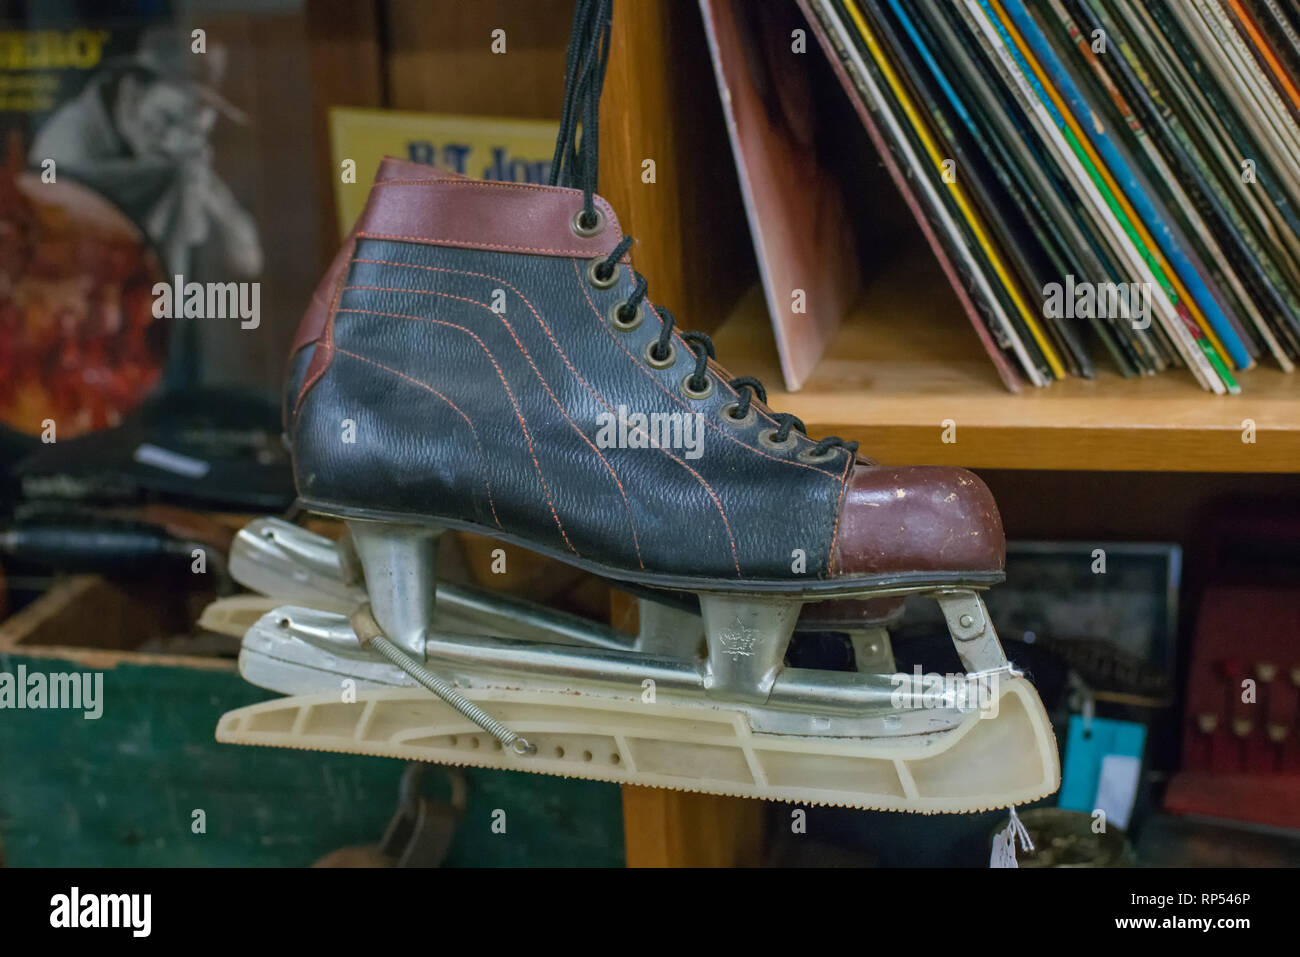 An old ice skate is found displayed at an antique store. - Stock Image